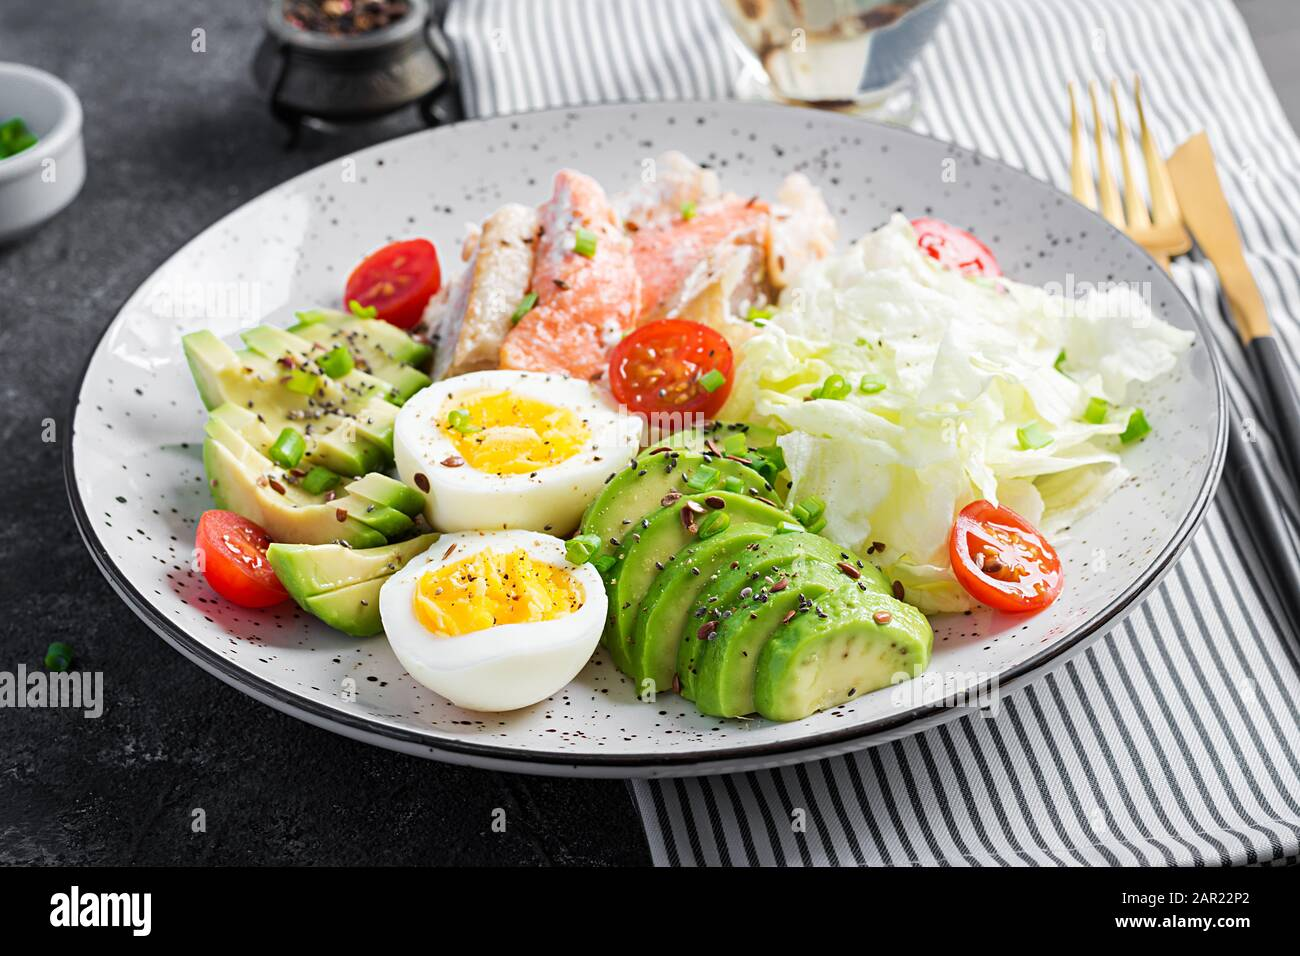 Ketogenic Diet Breakfast Eggs Fish And Avocado Lettuce And Seeds Low Carb High Fat Breakfast Keto Paleo Menu Stock Photo Alamy